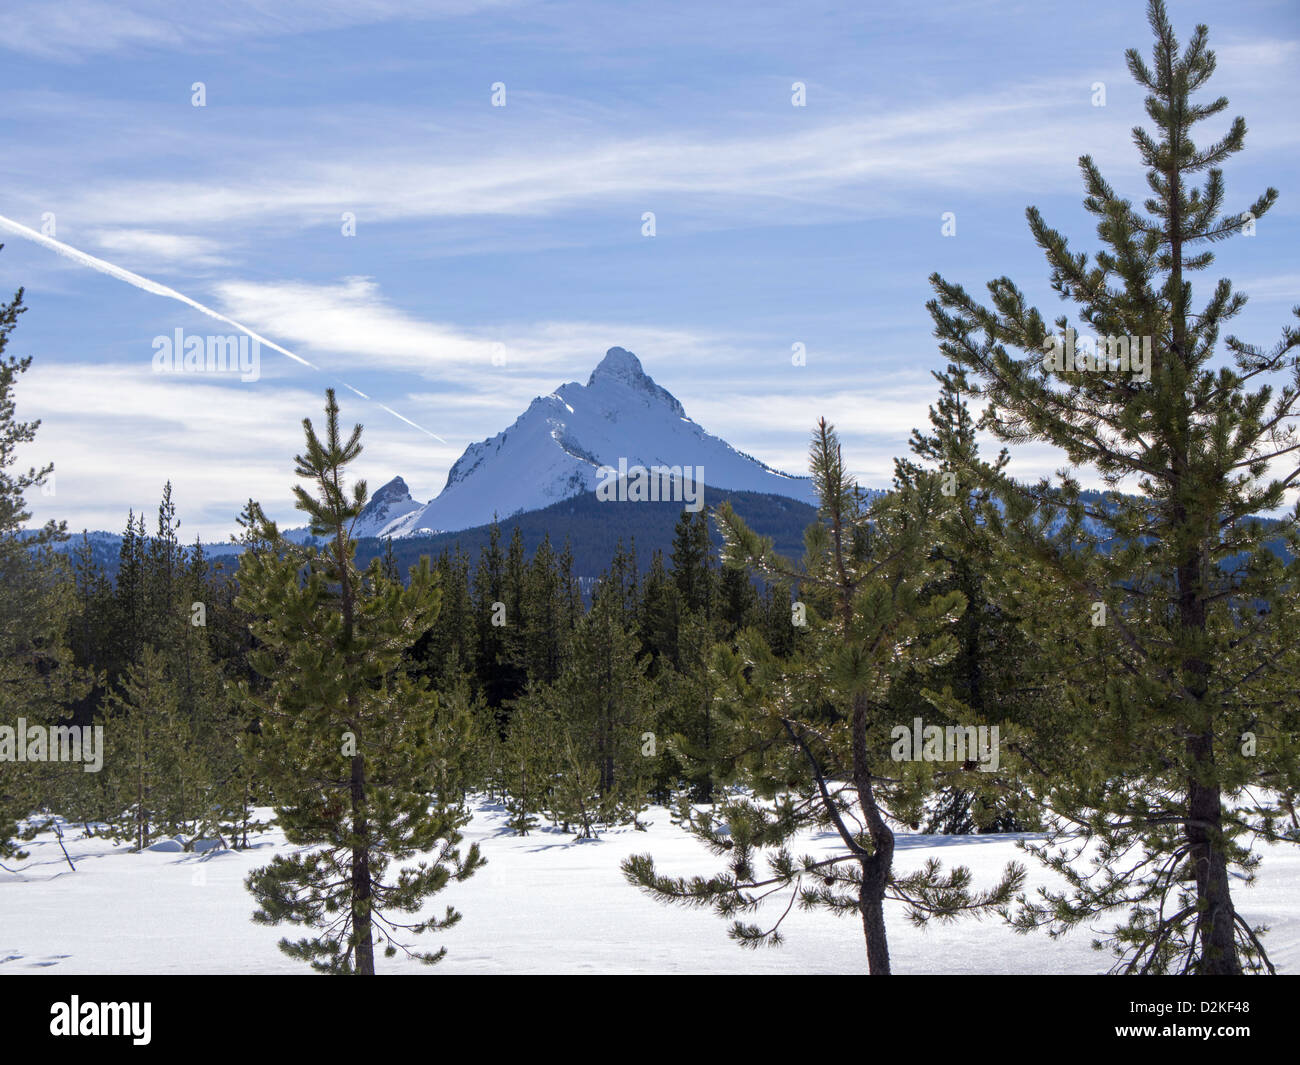 View of Mt. Washington from the South Loop of Ray Benson Sno-Park near Santiam Pass, Oregon, U.S.A. - Stock Image